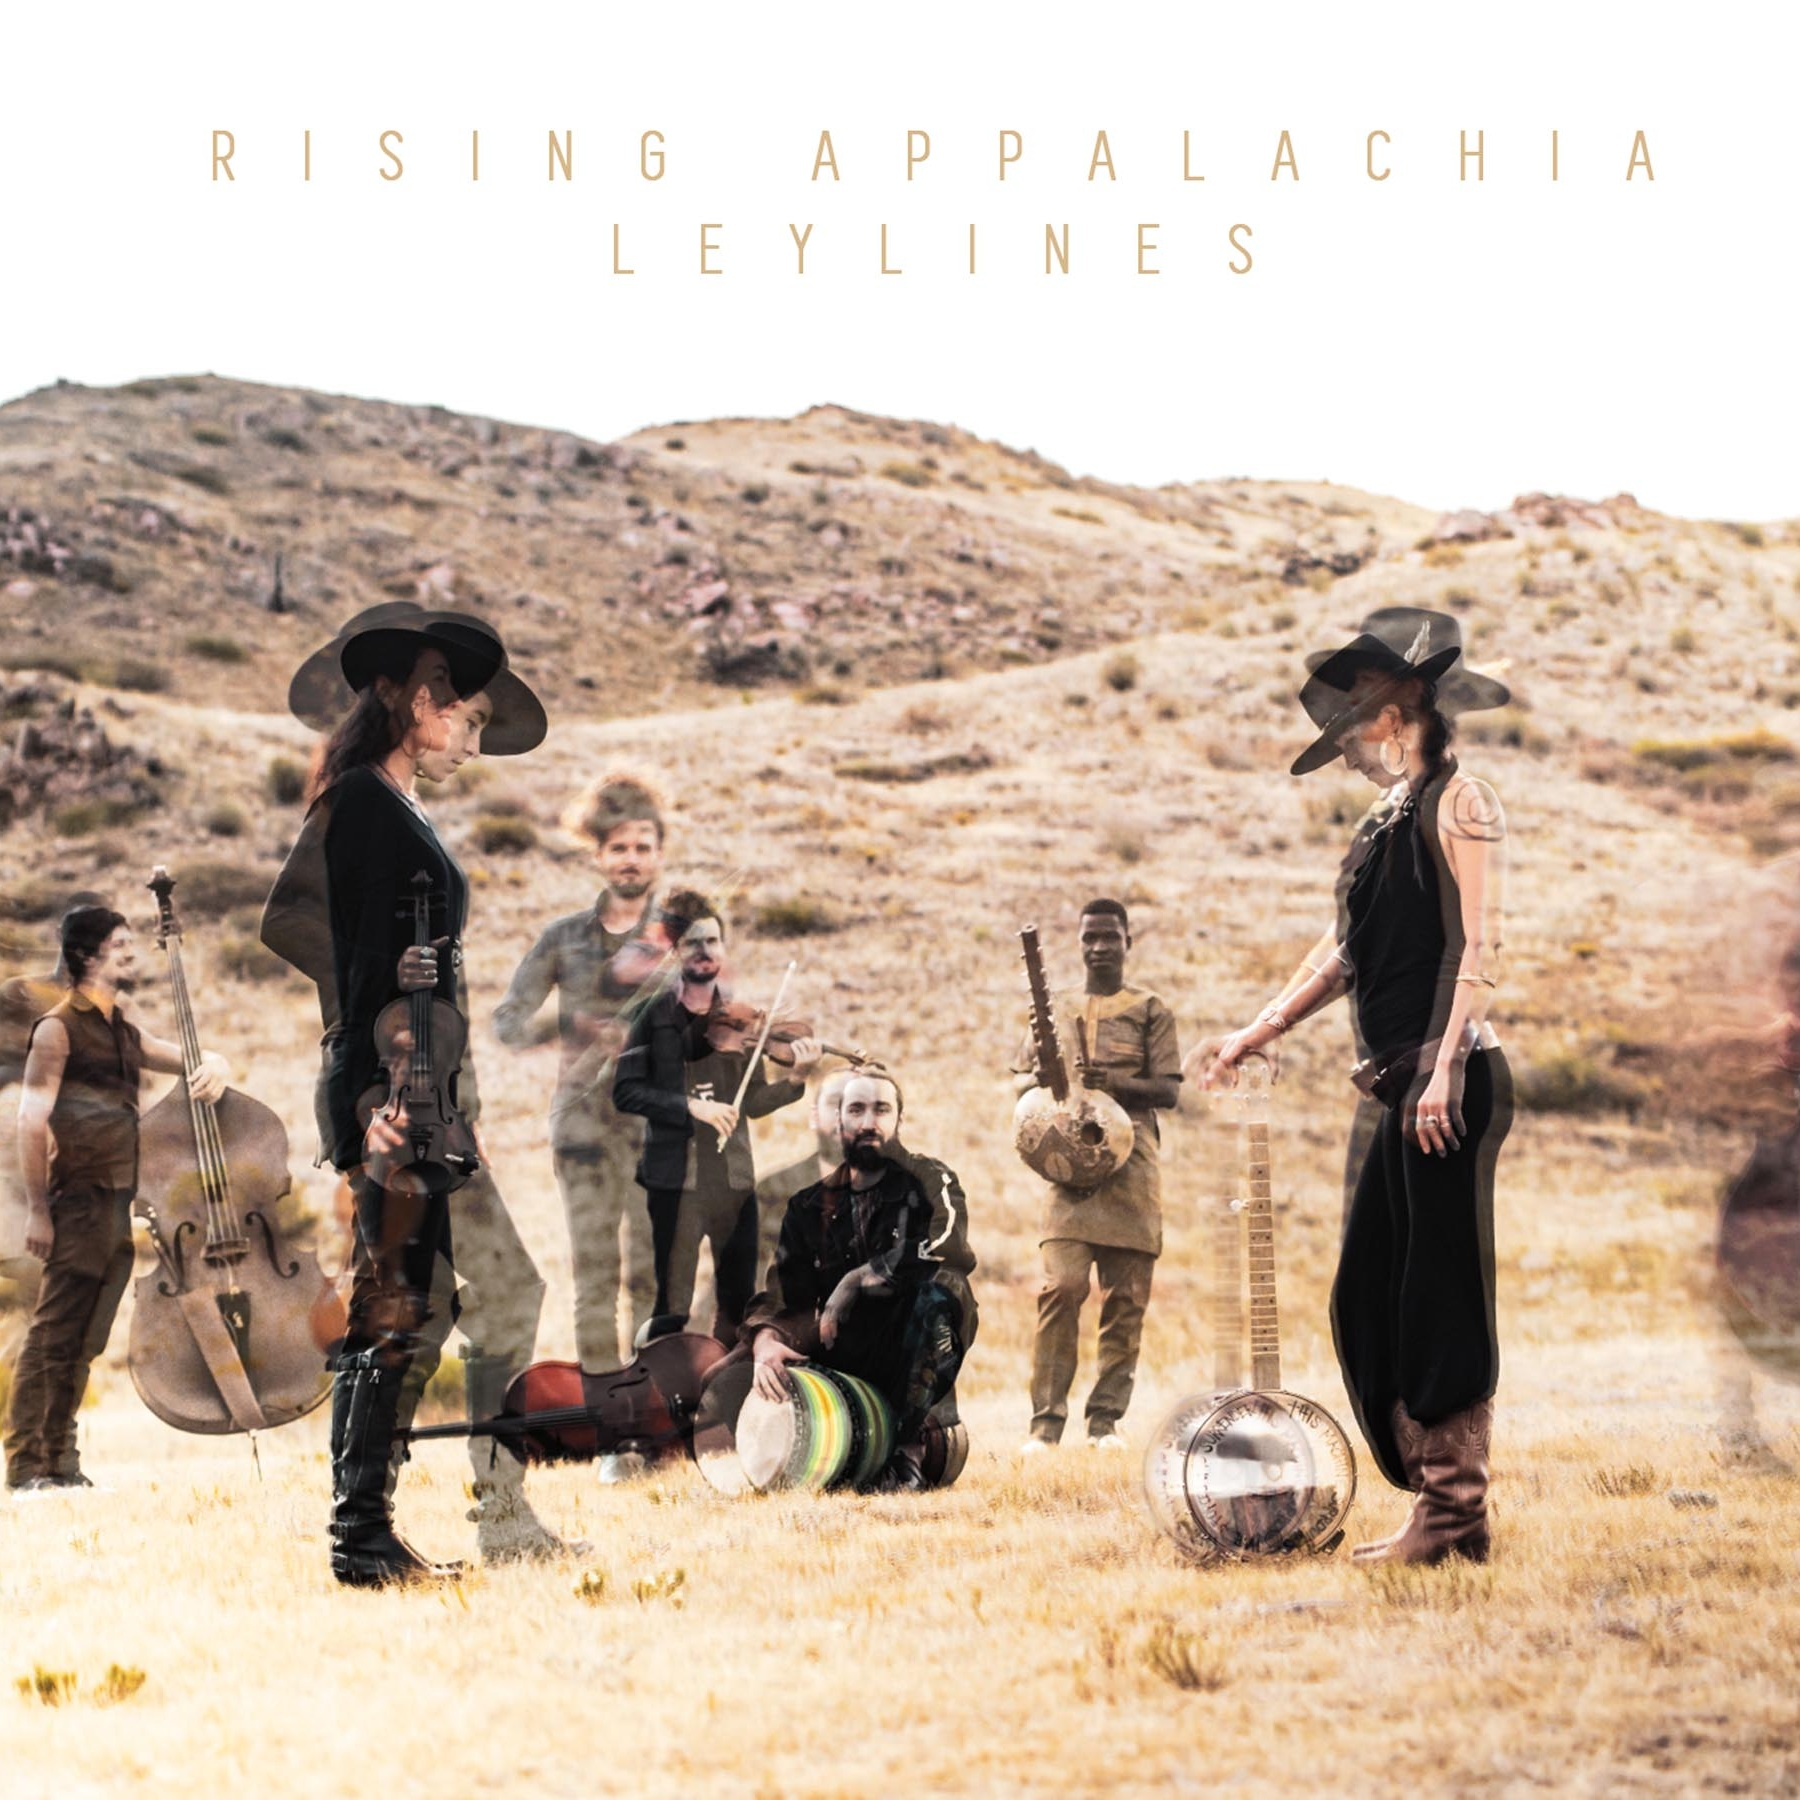 Leylines - Released May 3, 2019 | AlbumRising Appalachia's new album is Leylines is available now!